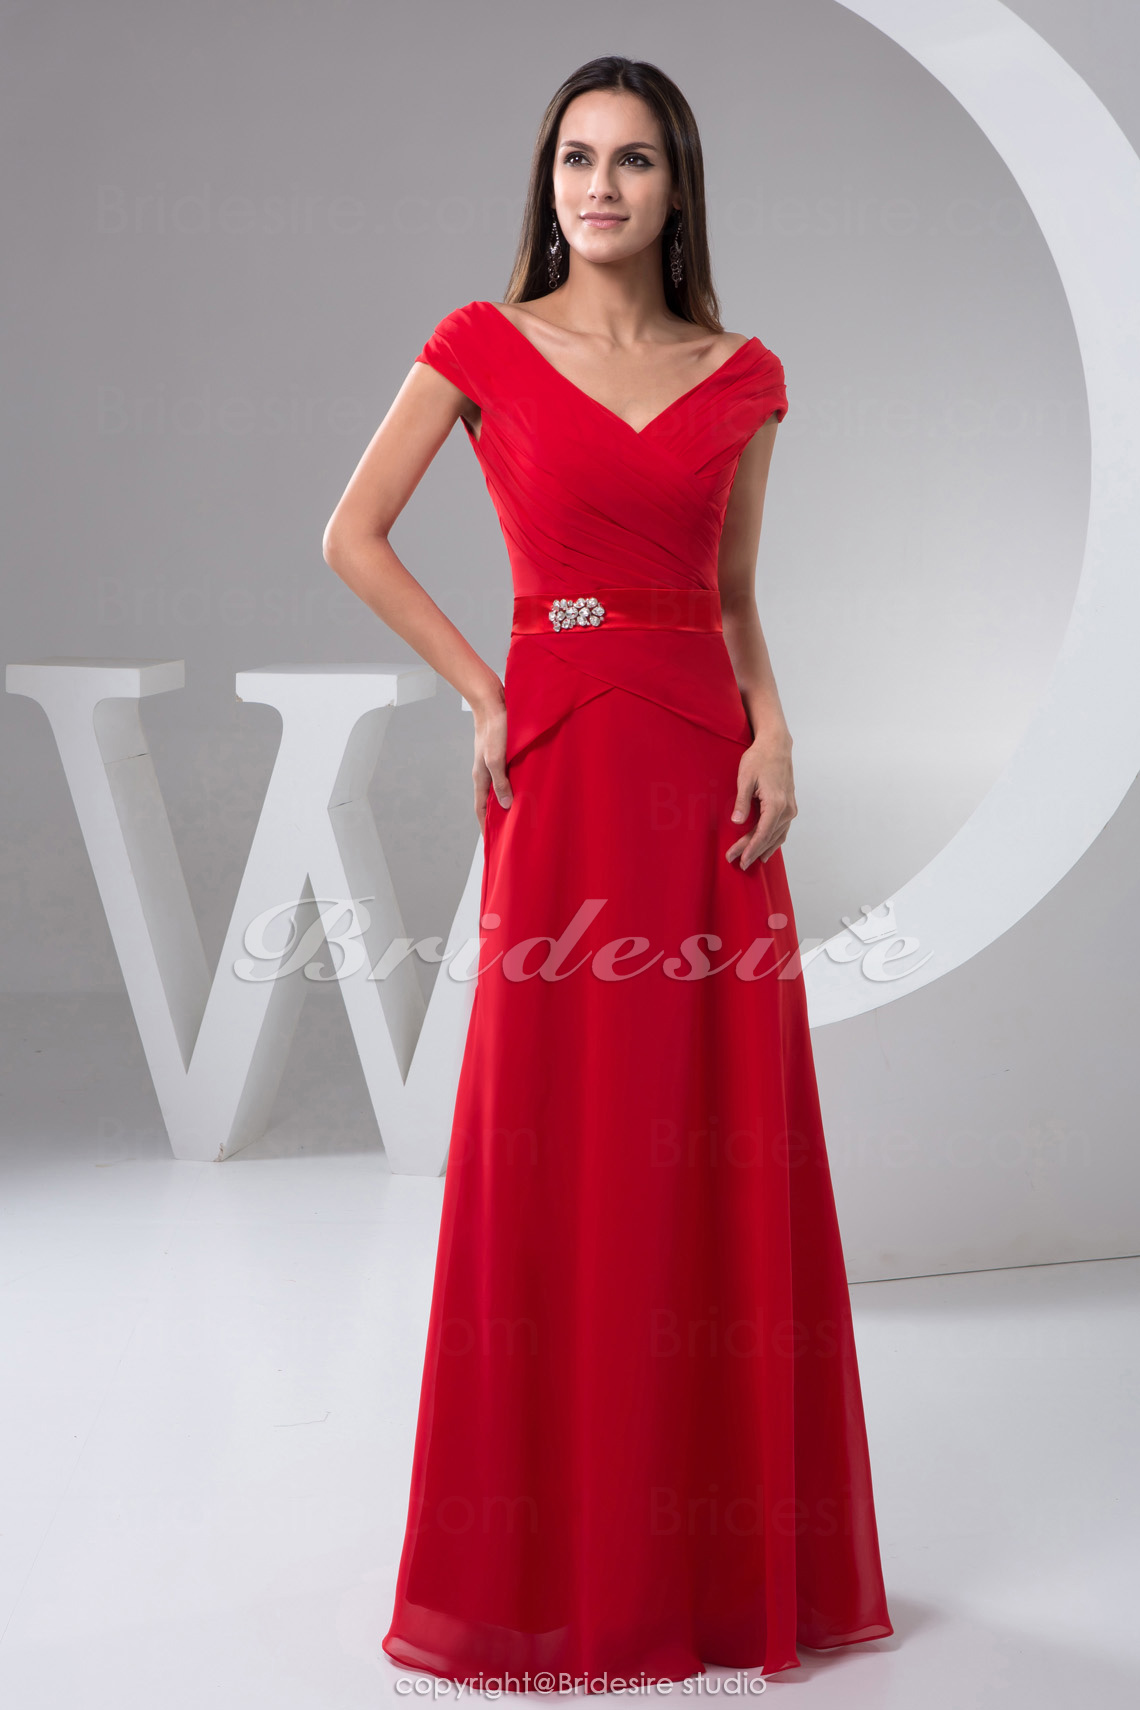 A-line V-neck Floor-length Short Sleeve Chiffon Satin Dress